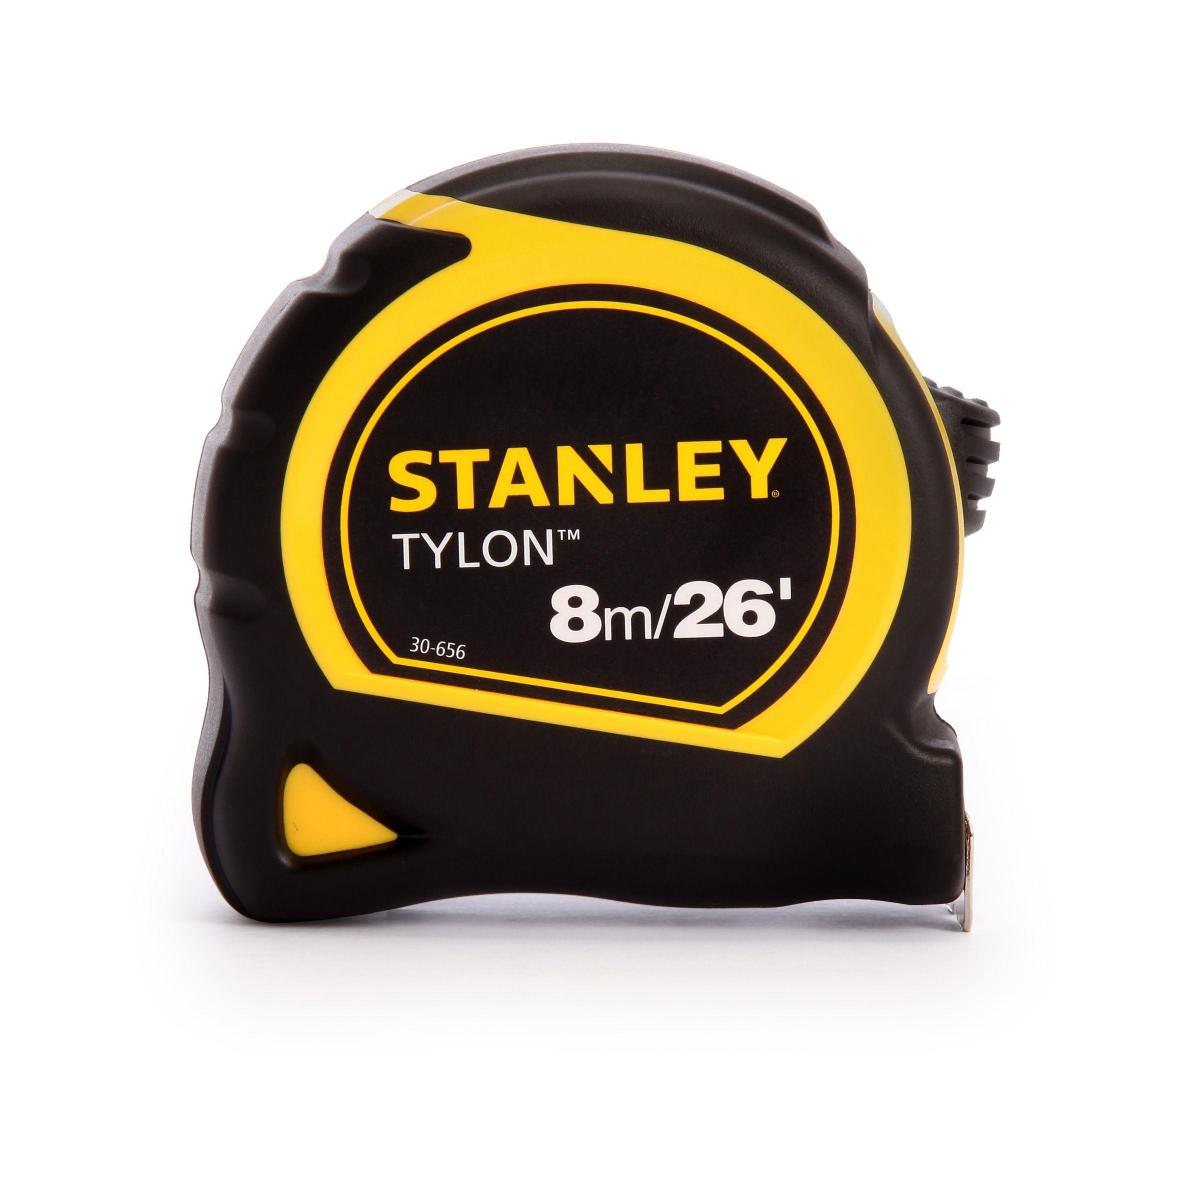 8m Tylon Measuring Tape  – Now Only £10.00